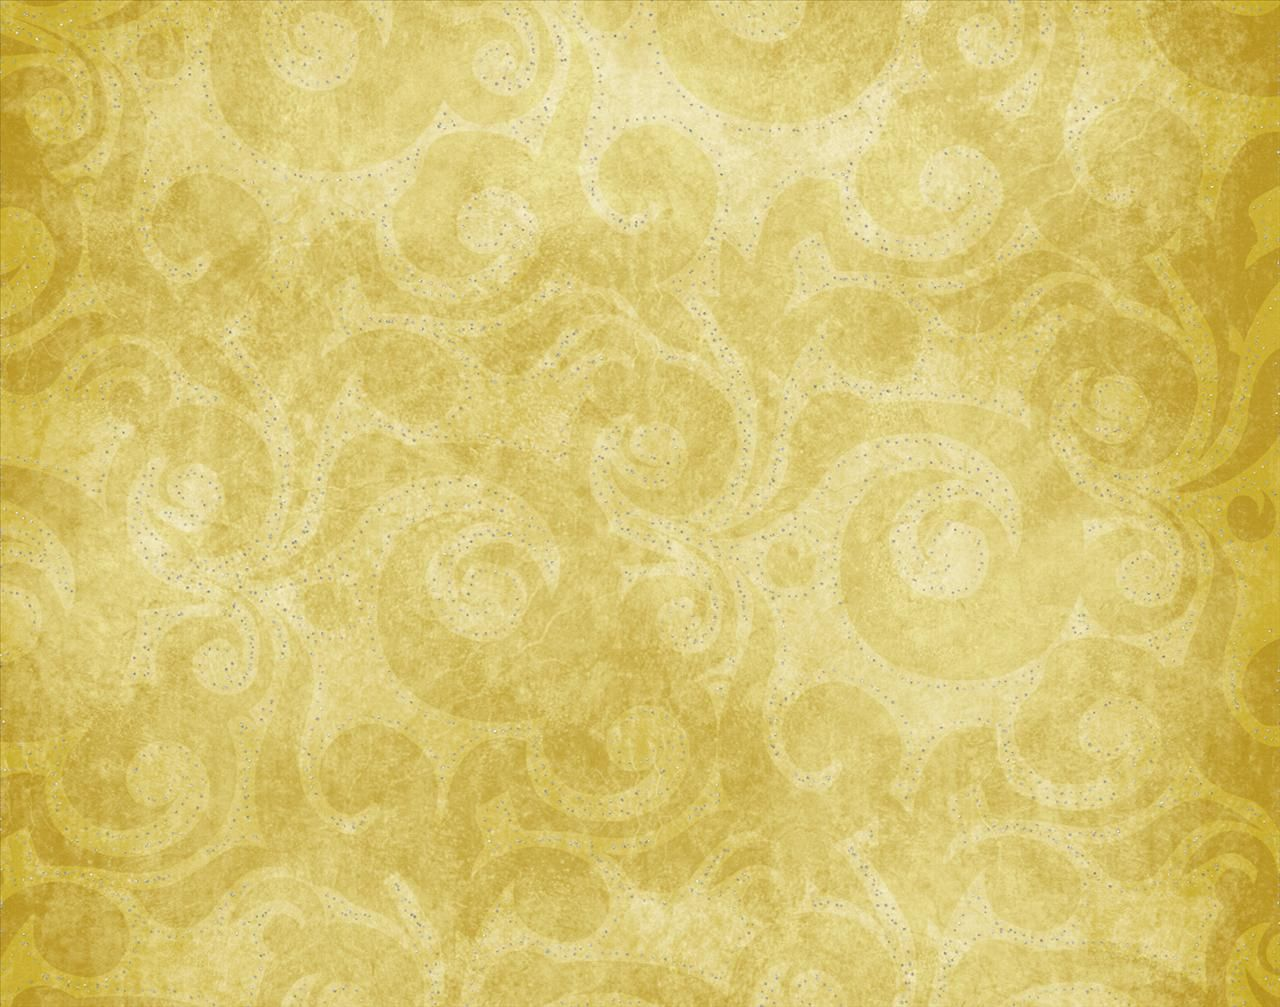 Glowing Golden backgrounds